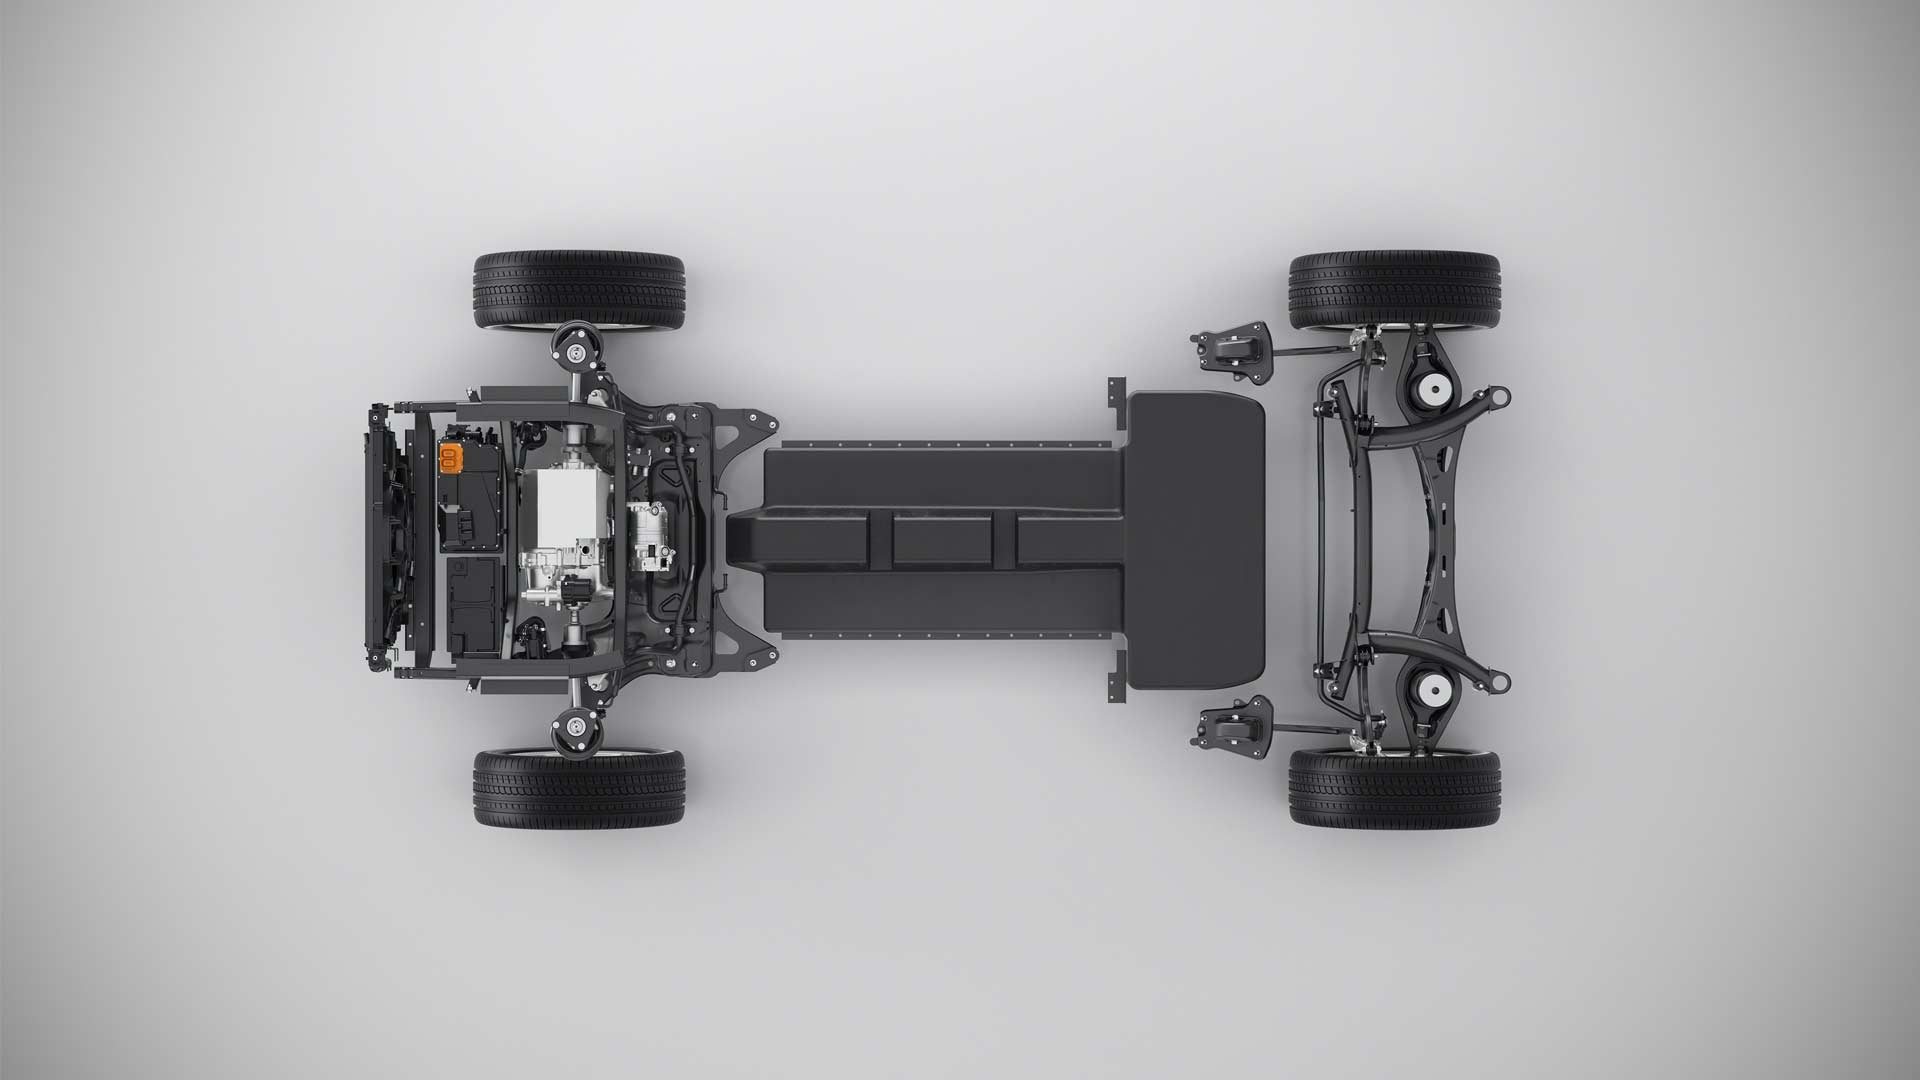 Volvo-CMA-based-Electric-Vehicle-40-Series-chassis-2019